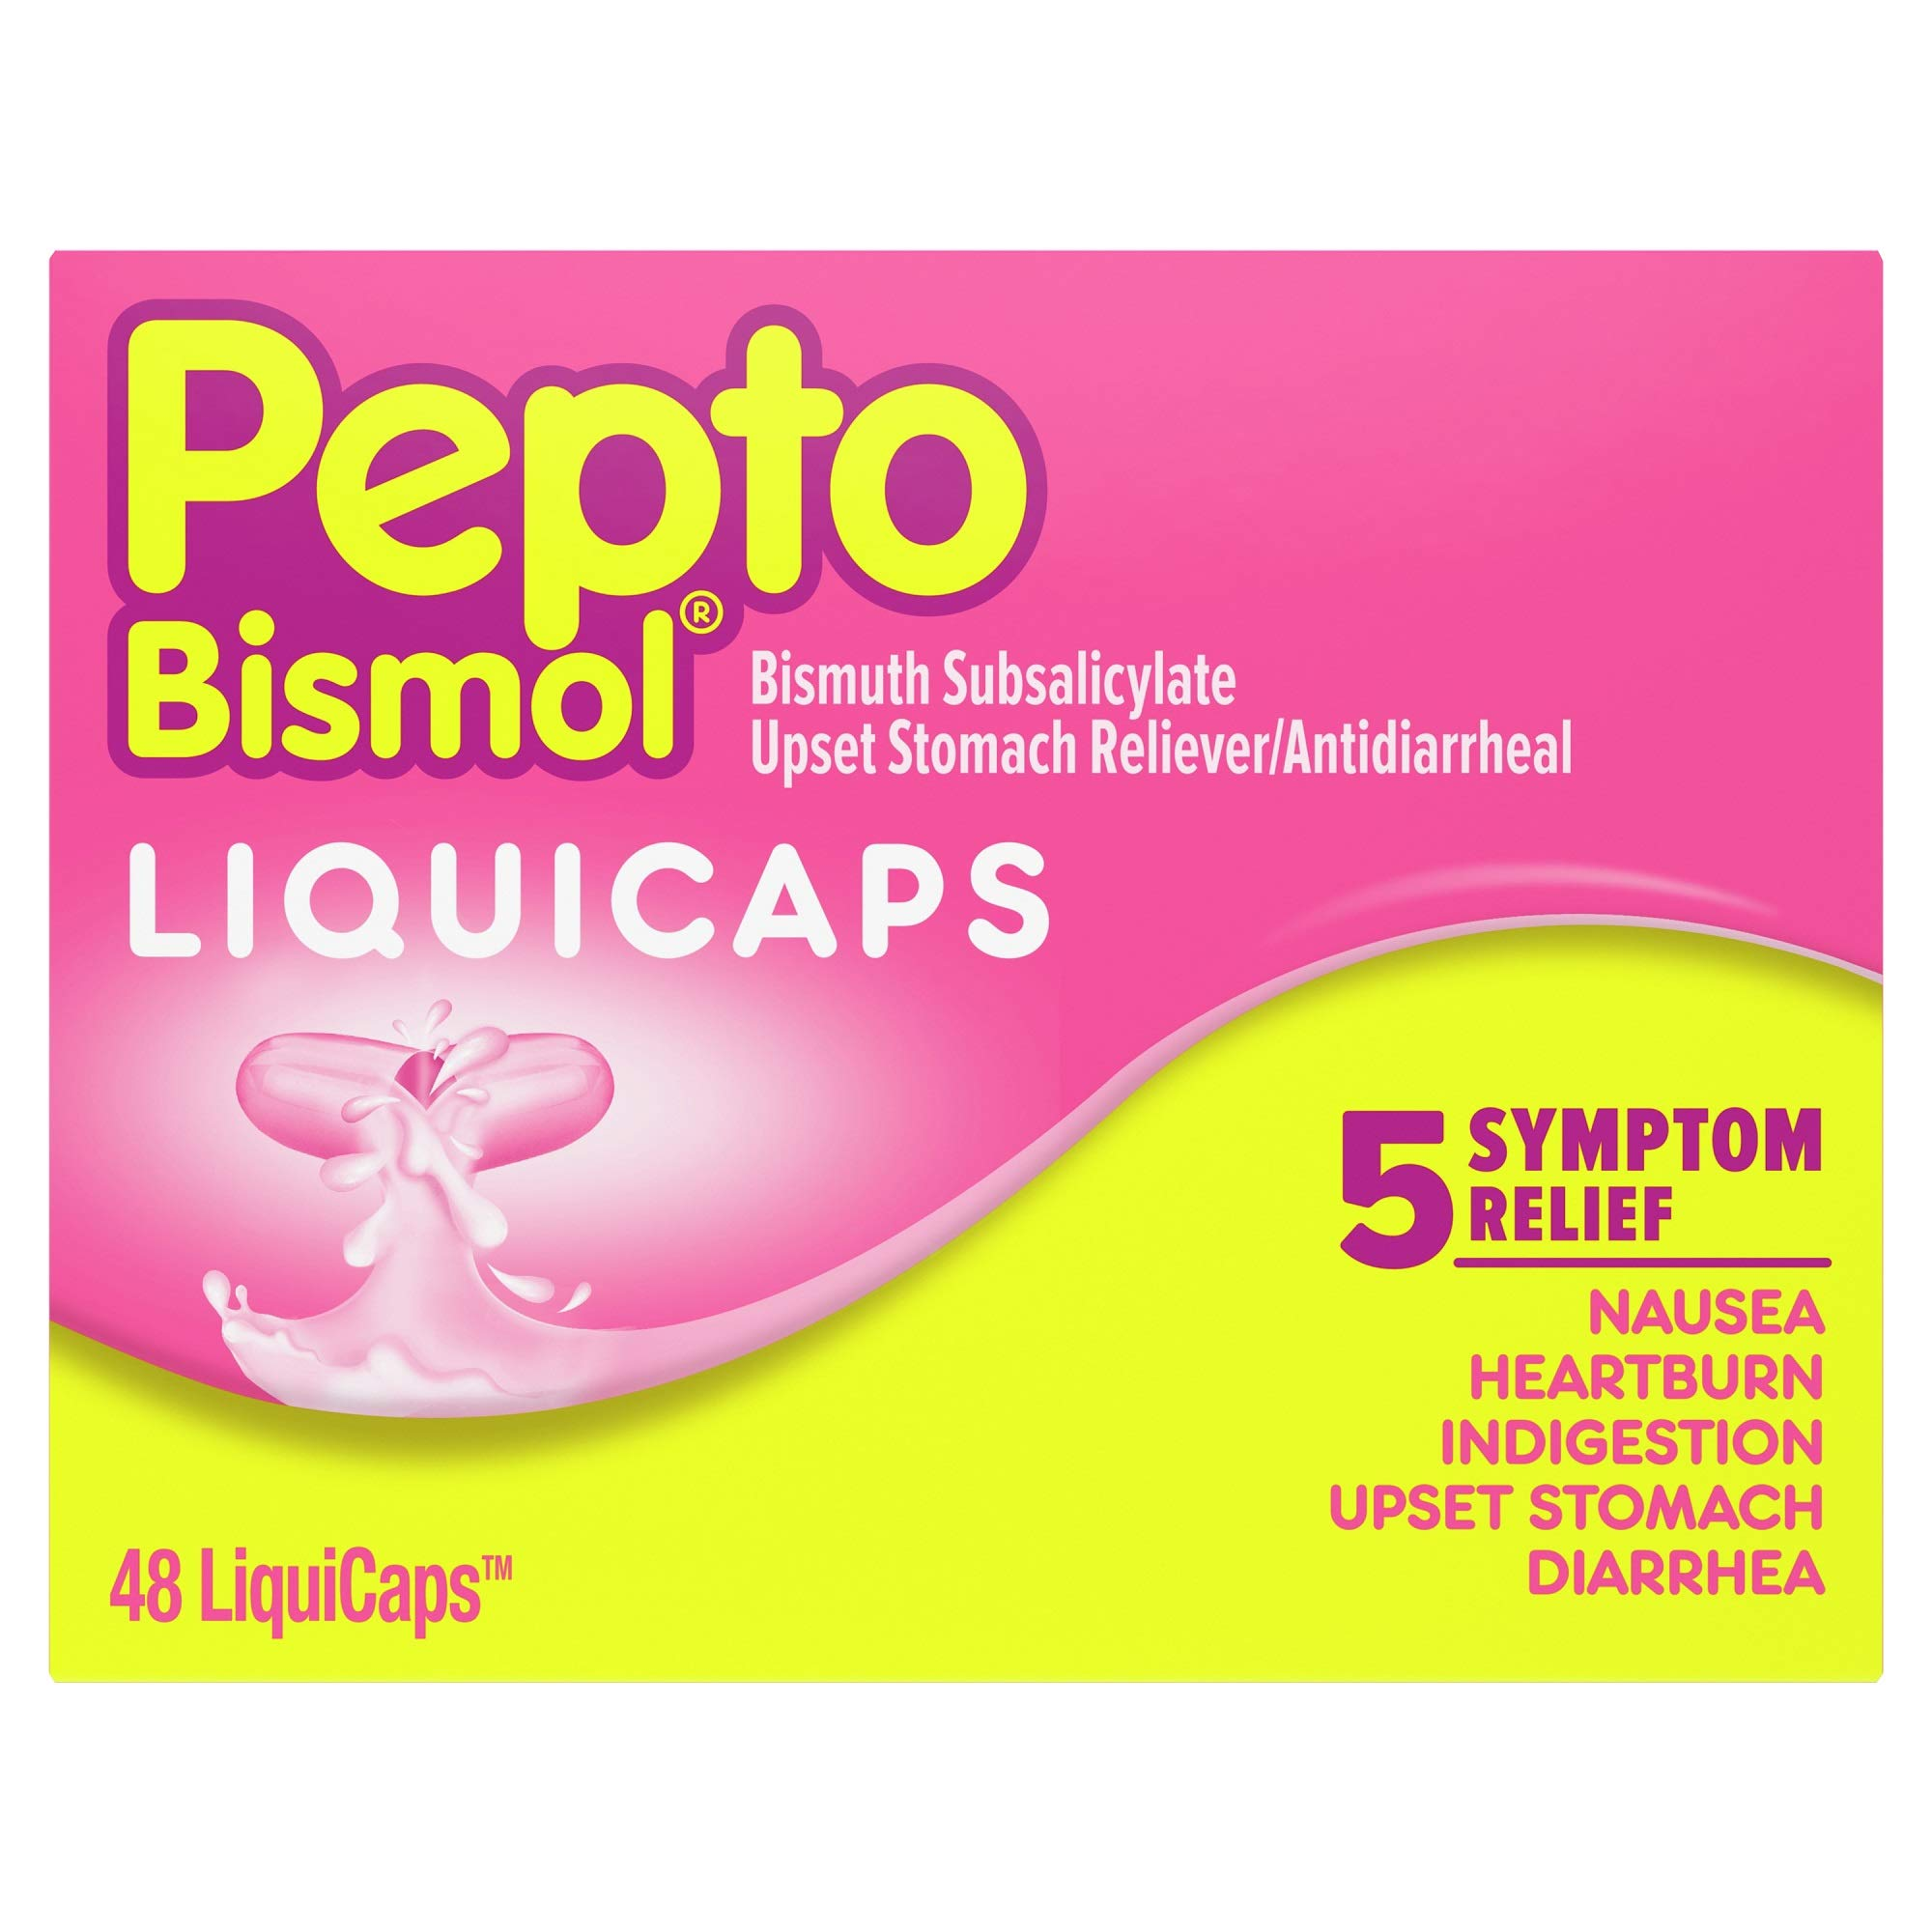 Pepto Bismol Liquicaps, Upset Stomach Relief, Bismuth Subsalicylate, Multi-Symptom Relief of Gas, Nausea, Heartburn, Indigestion, Upset Stomach, Diarrhea, 48 Liquicaps